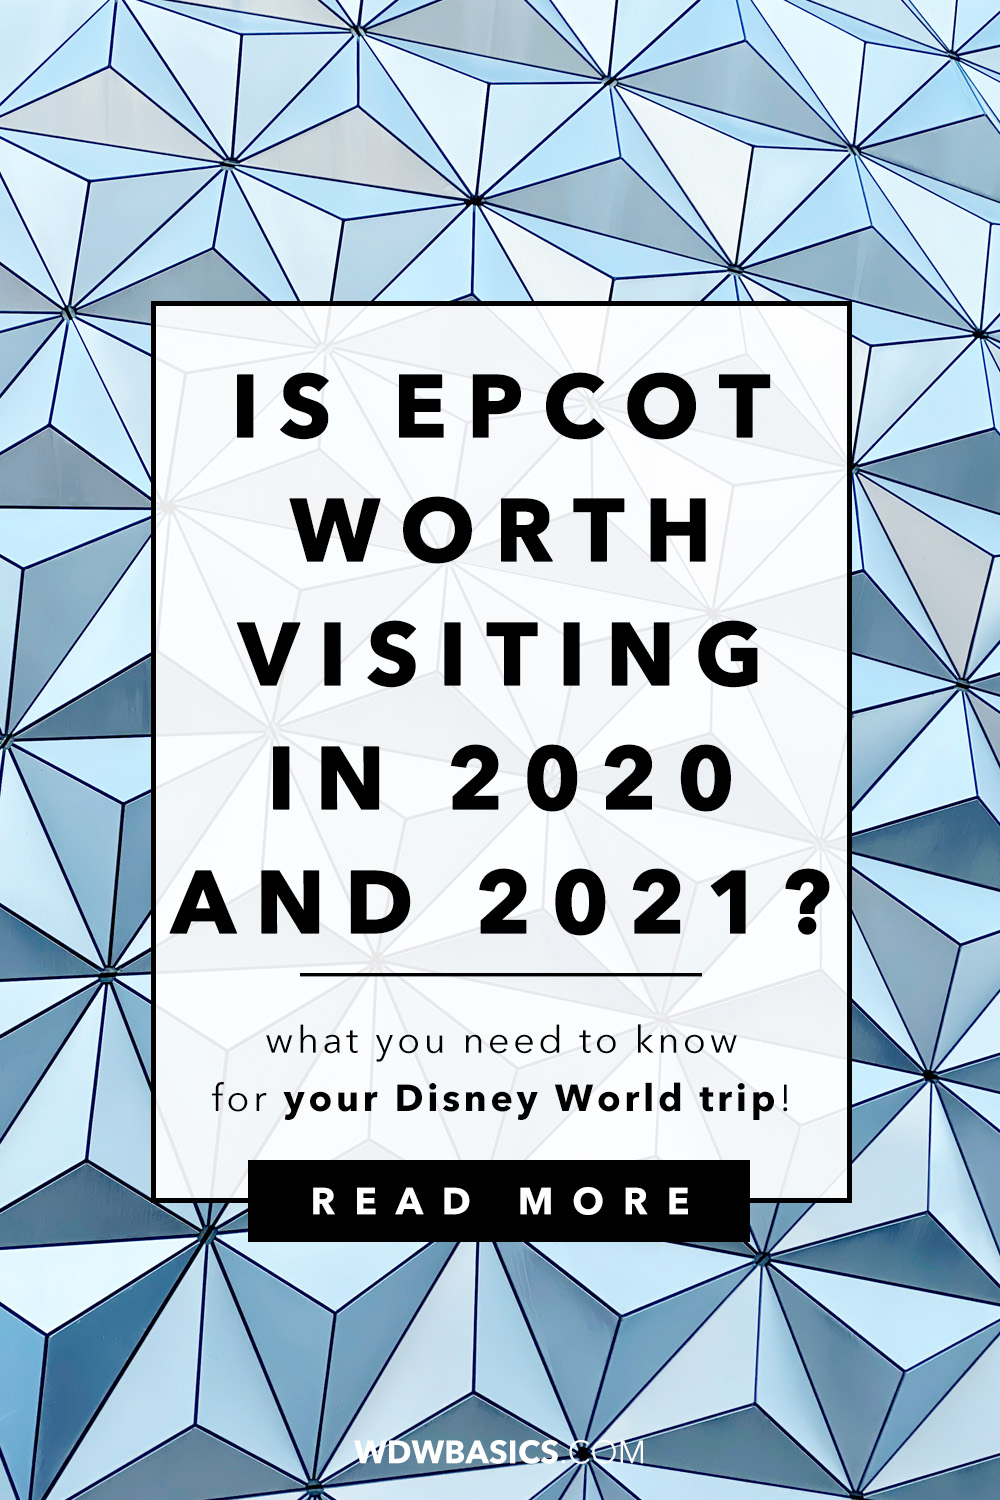 Is Epcot Worth Visiting in 2020 and 2021?